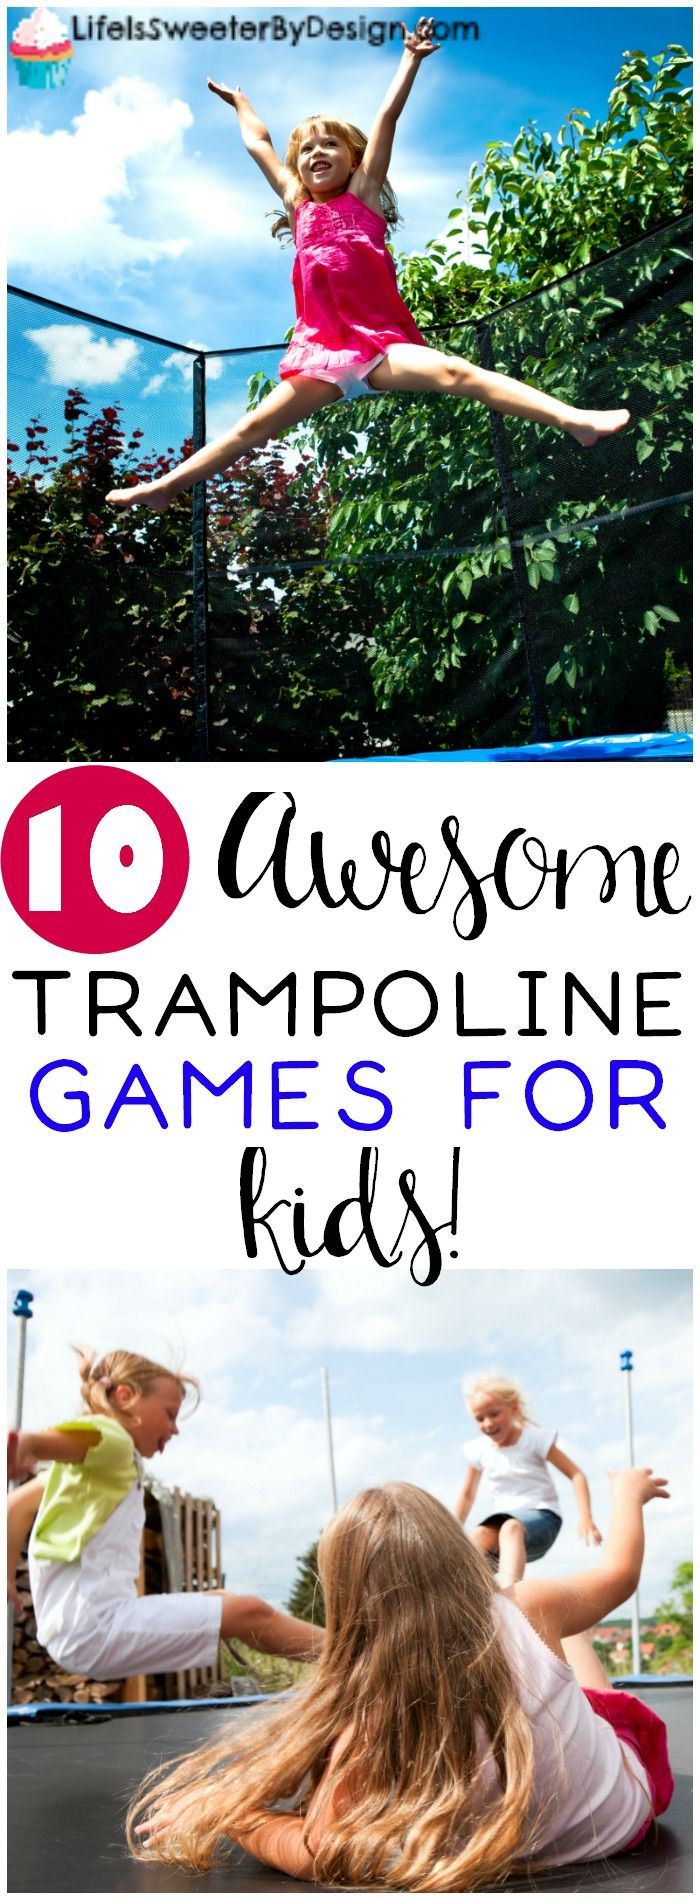 These 10 trampoline games for kids will keep them busy